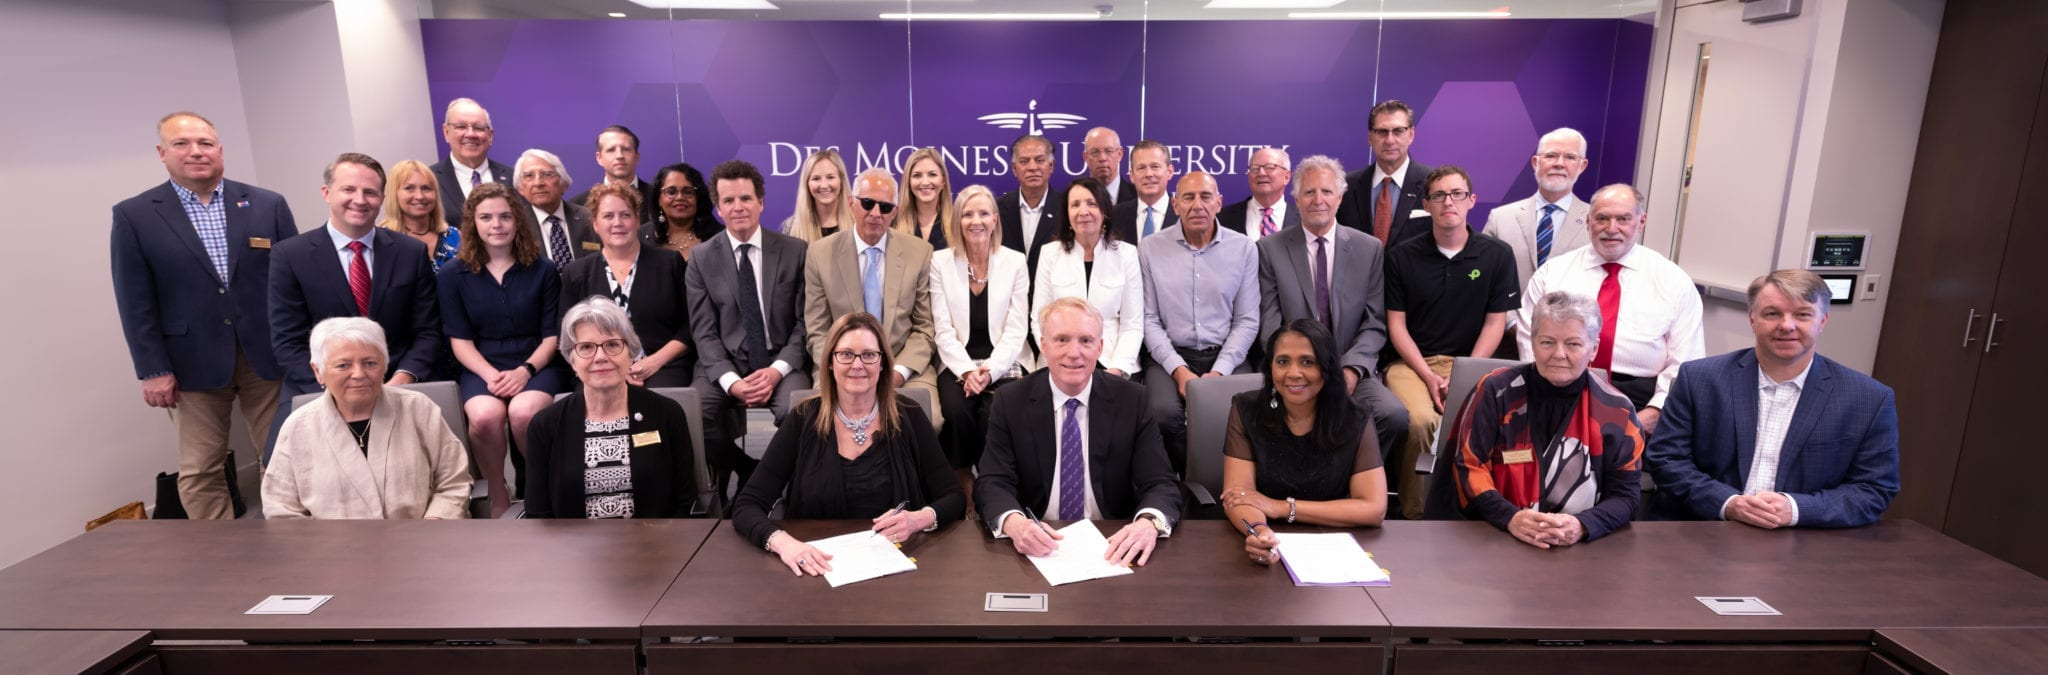 Signing of property agreement between the McKinney family and the DMU Board of Trustees